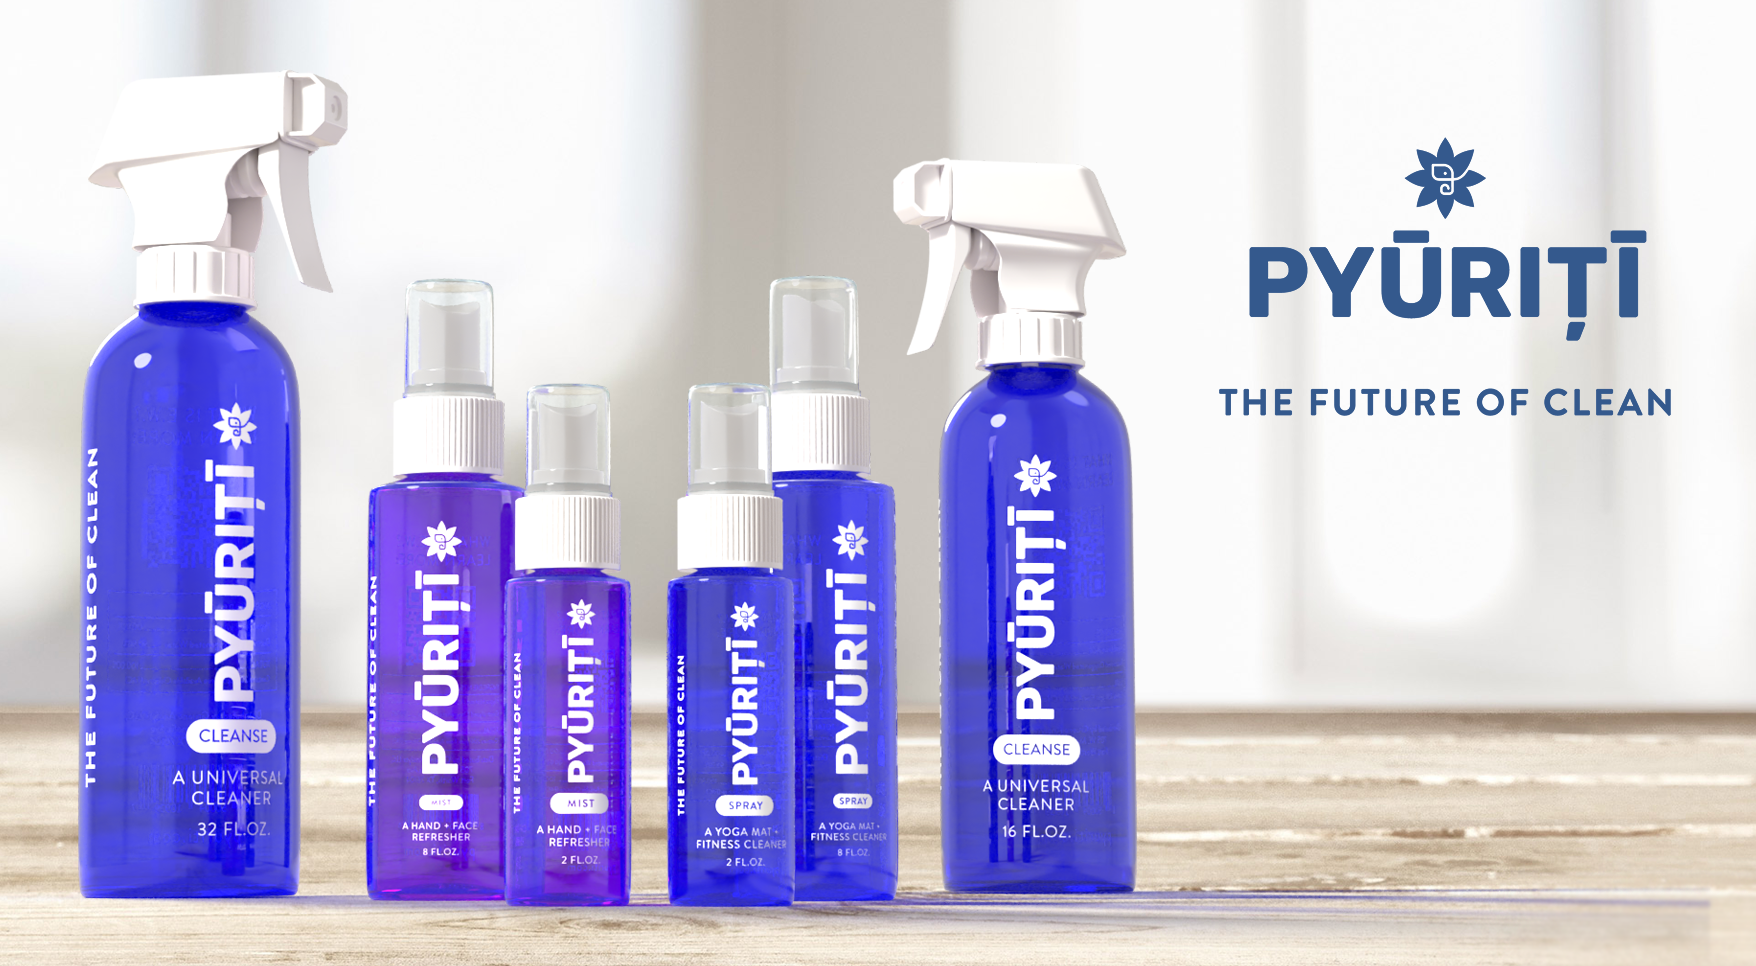 Pyuriti line of products (bottles)